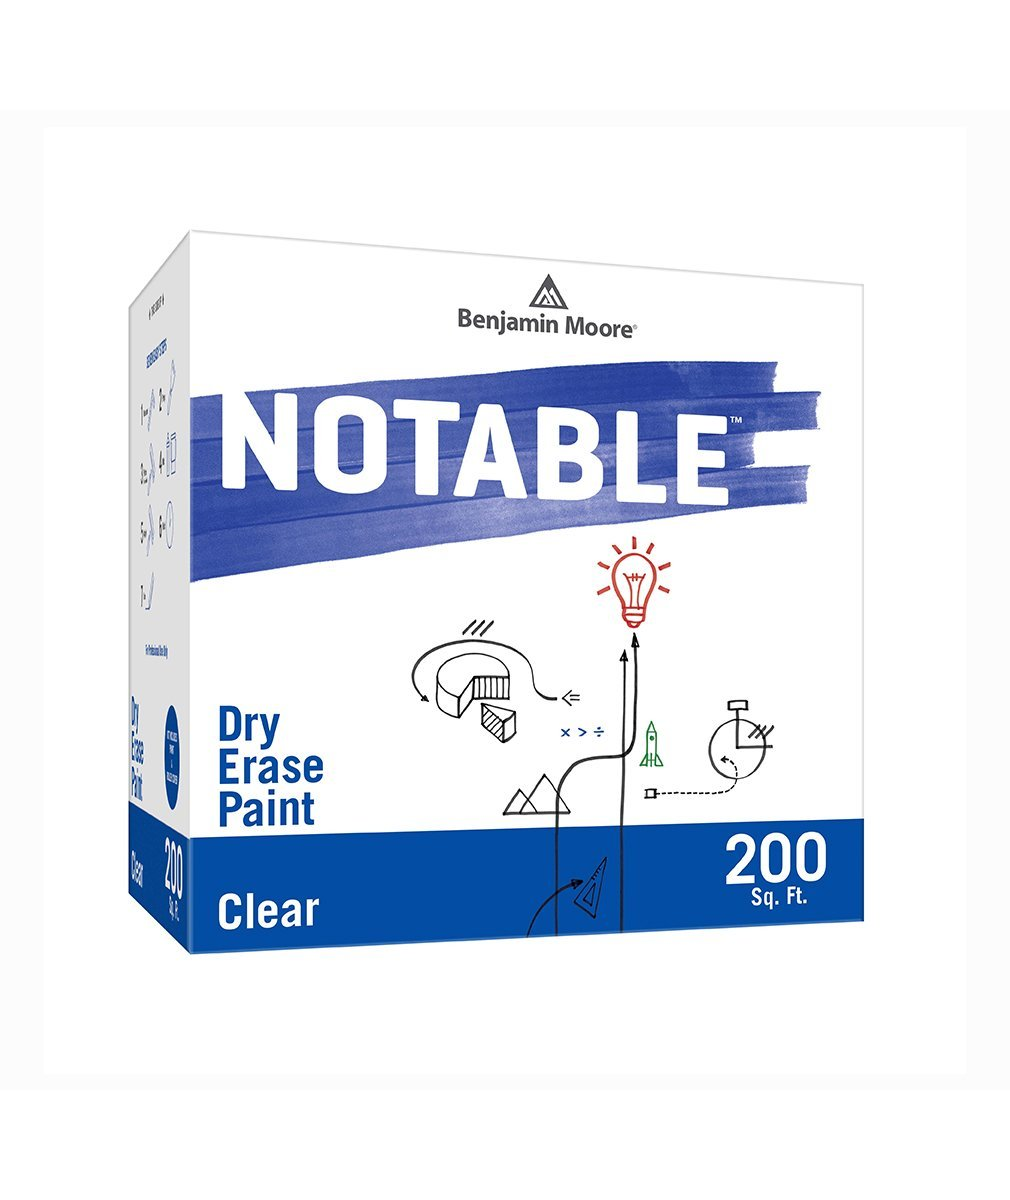 Benjamin Moore Notable Dry Erase Paint in Clear 200 sq. ft, available at Regal Paint Centers.